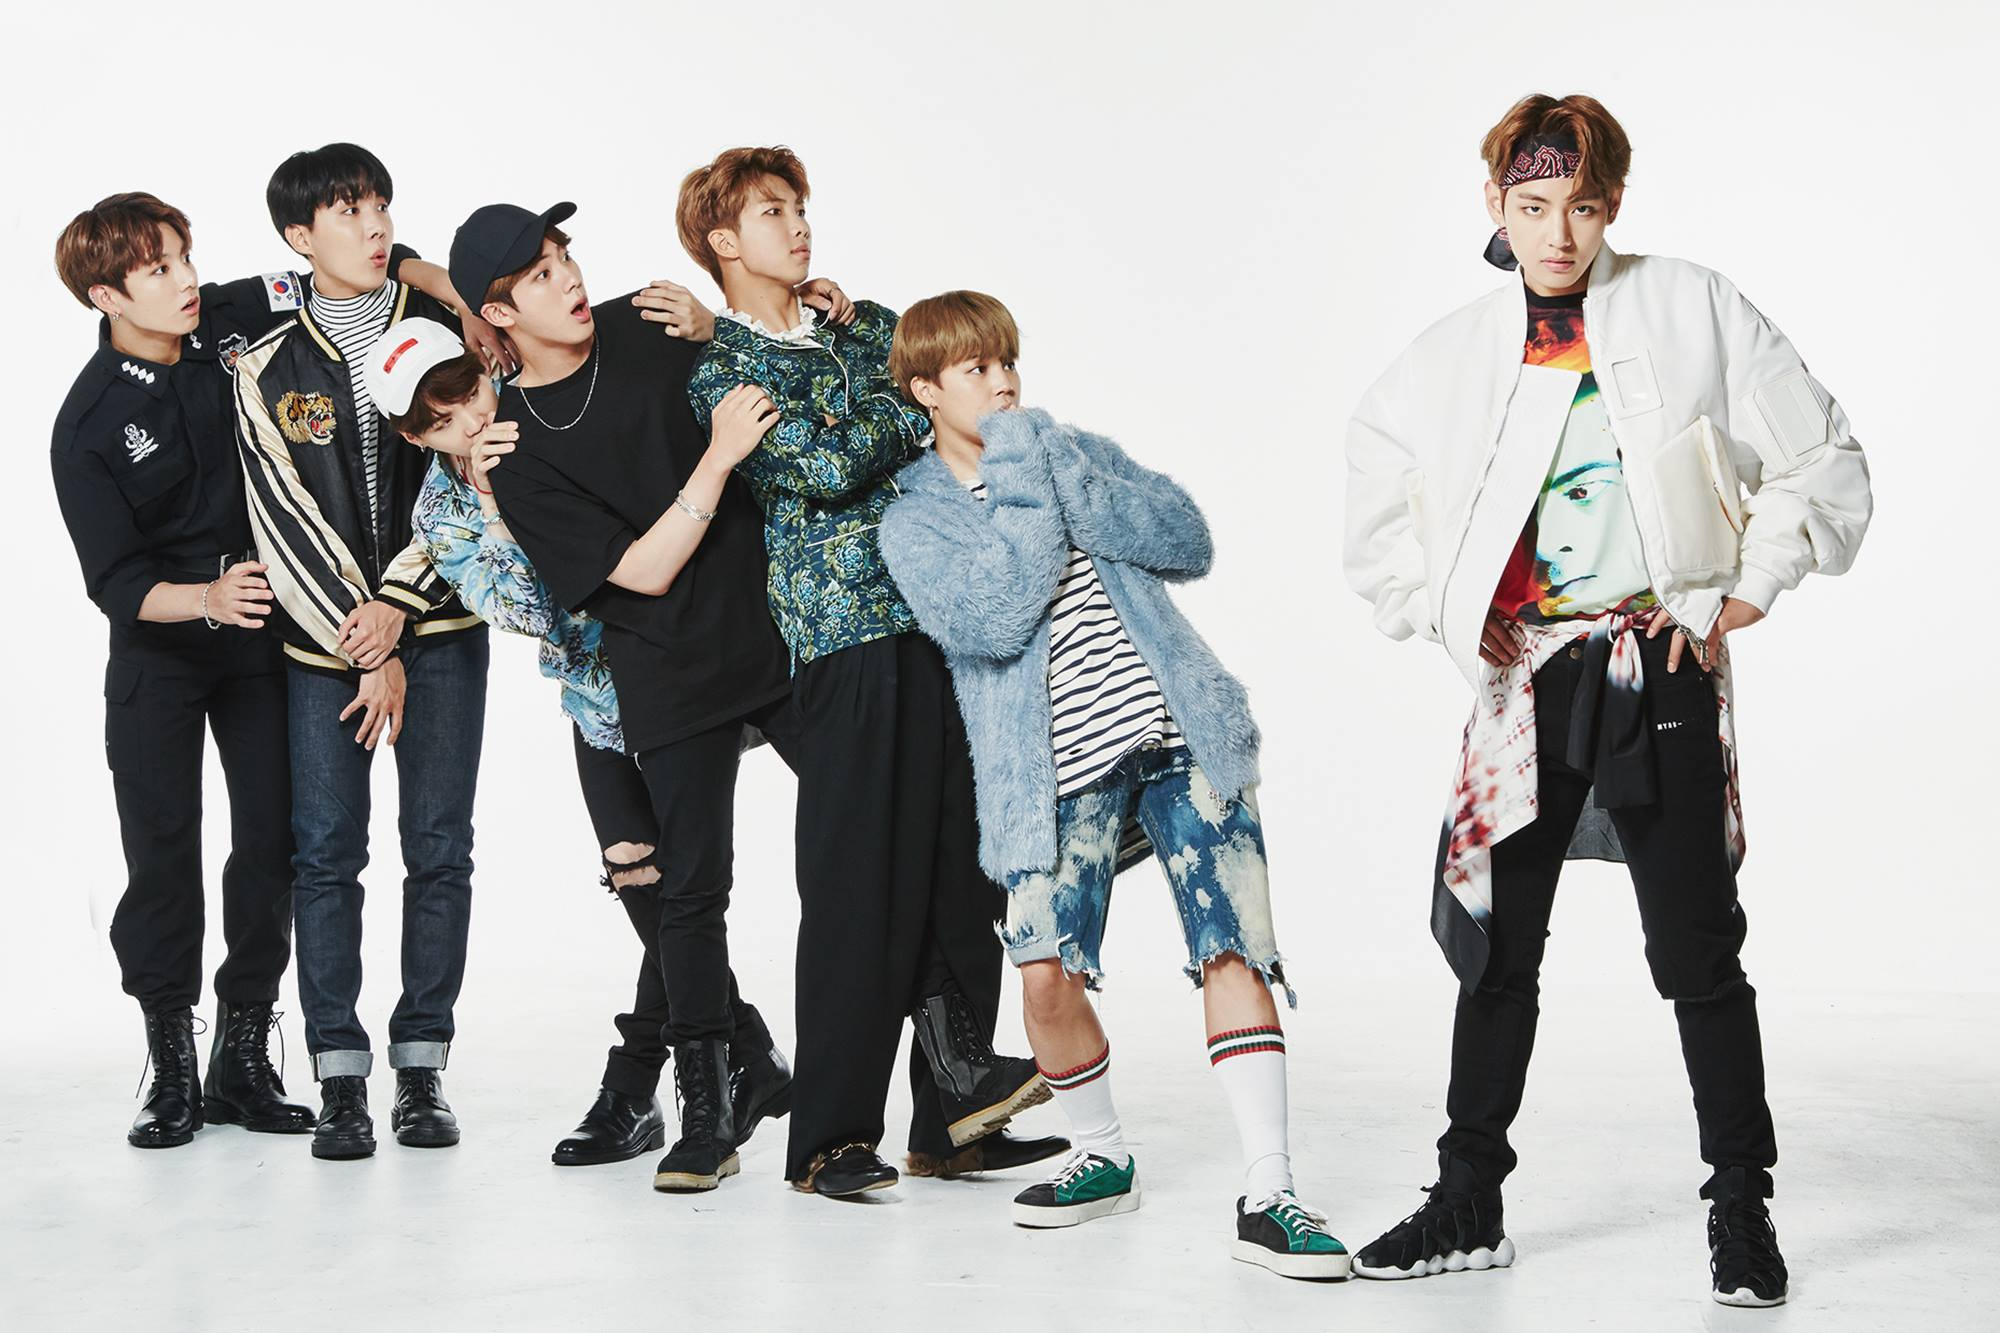 Bts Photoshoot Outfits | cabeqq com